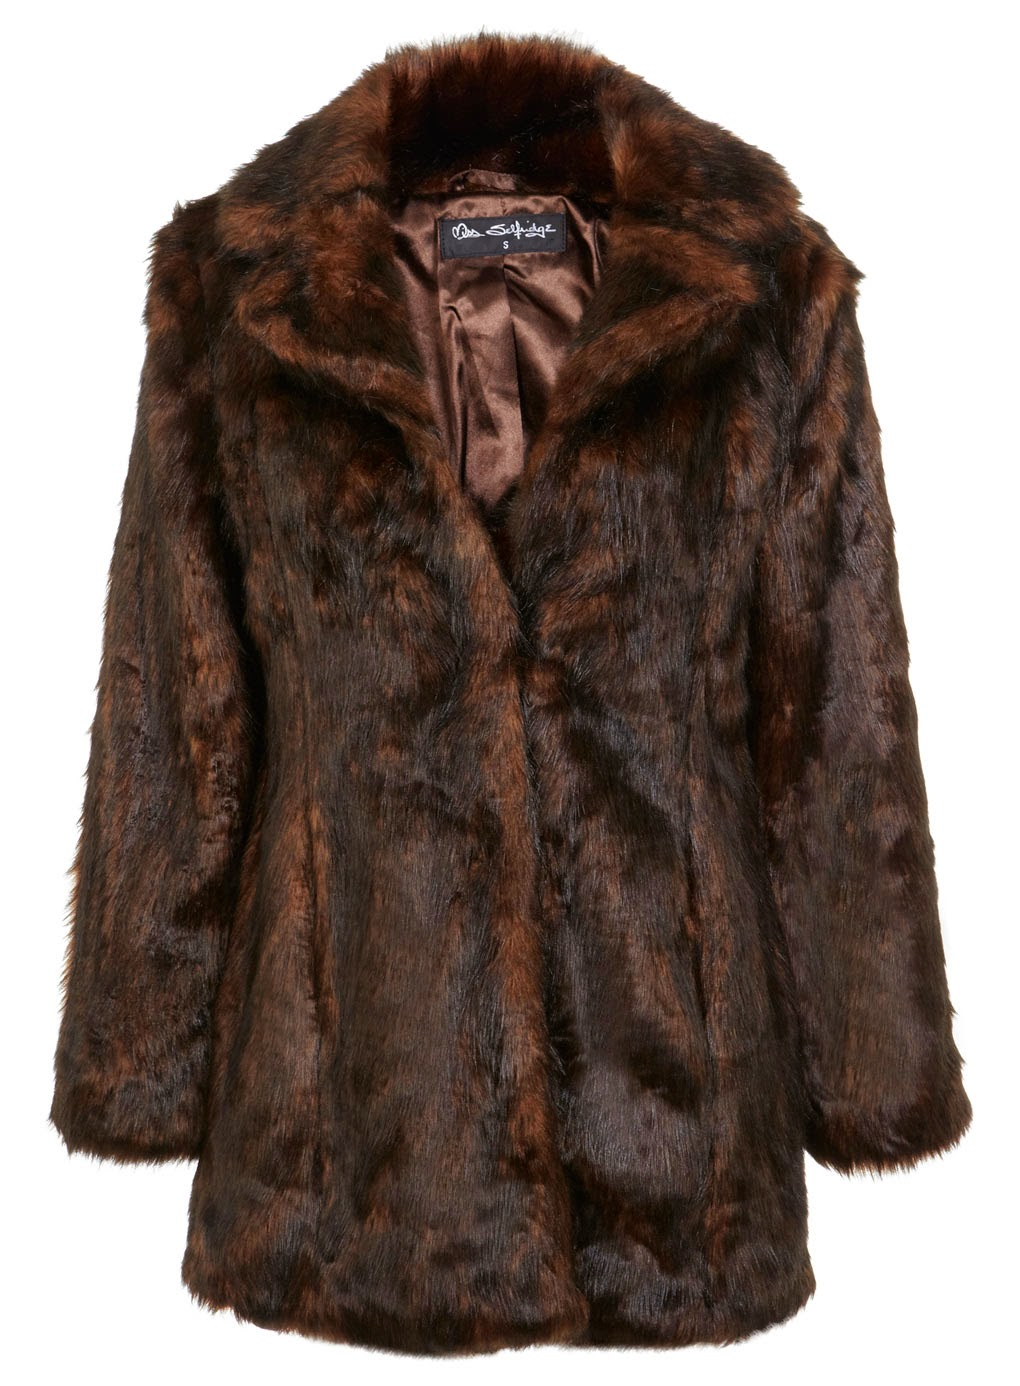 selfridge brown fur coat